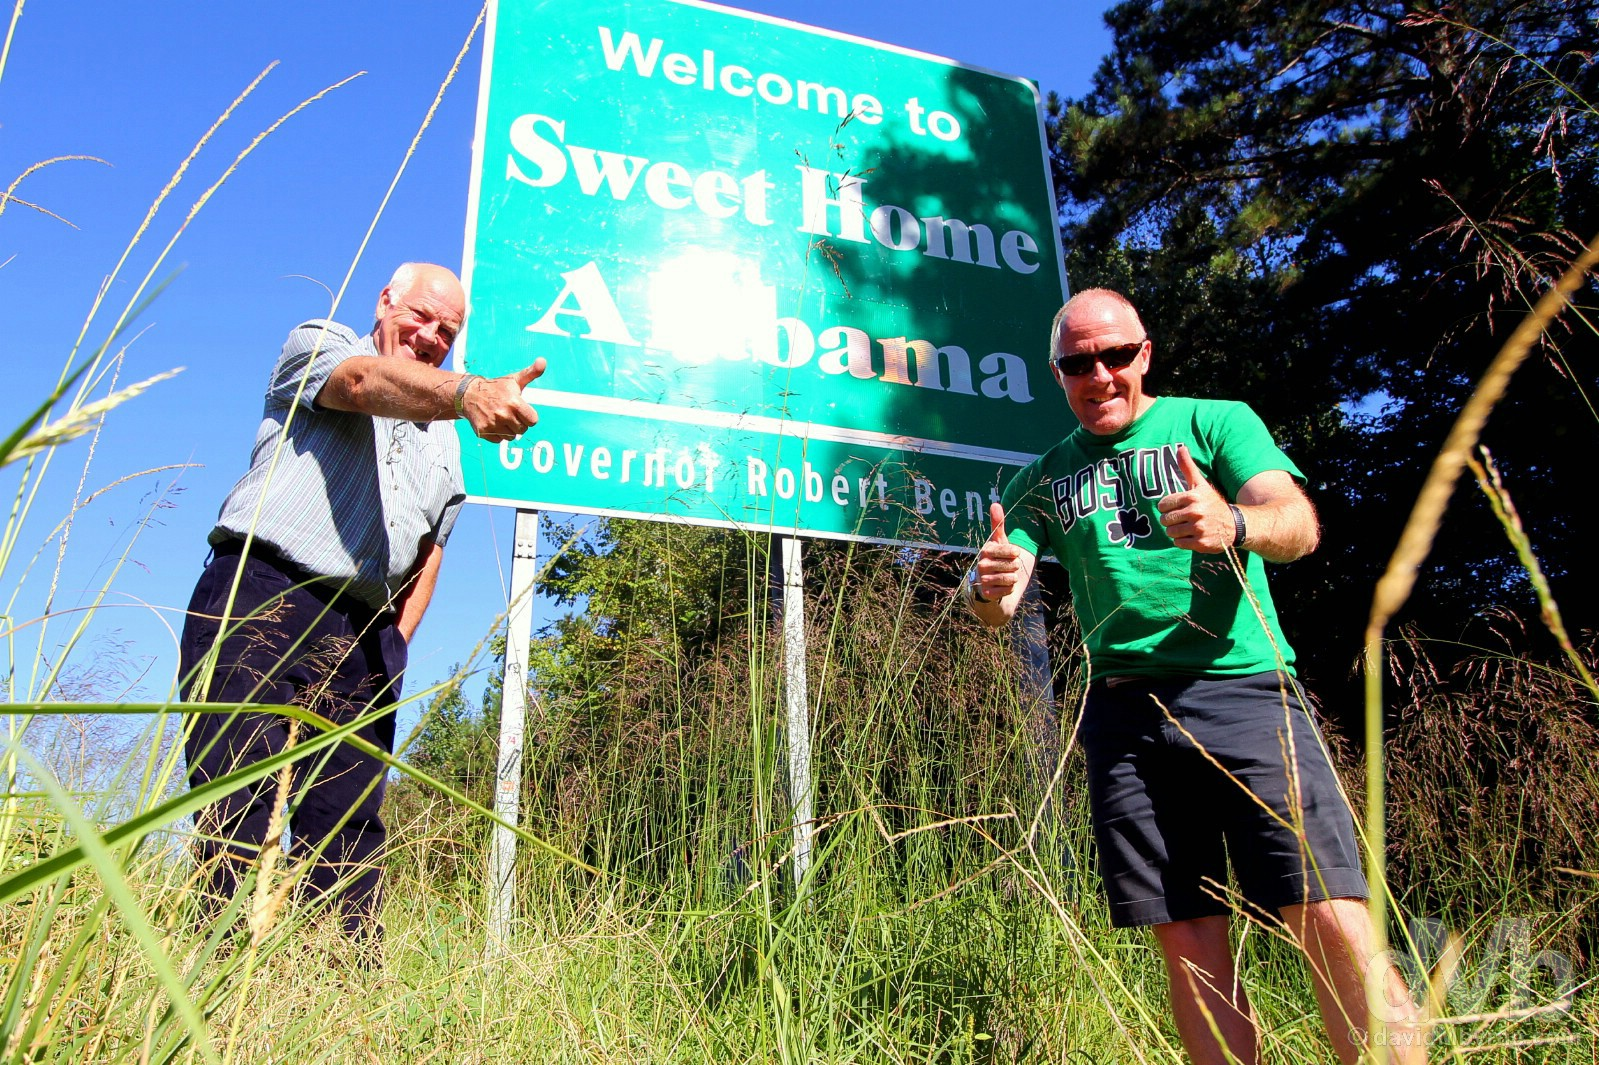 Sweet Home Alabama. At the Mississippi-Alabama state line on Interstate 20 outside Cuba, western Alabama, USA. September 20, 2016.